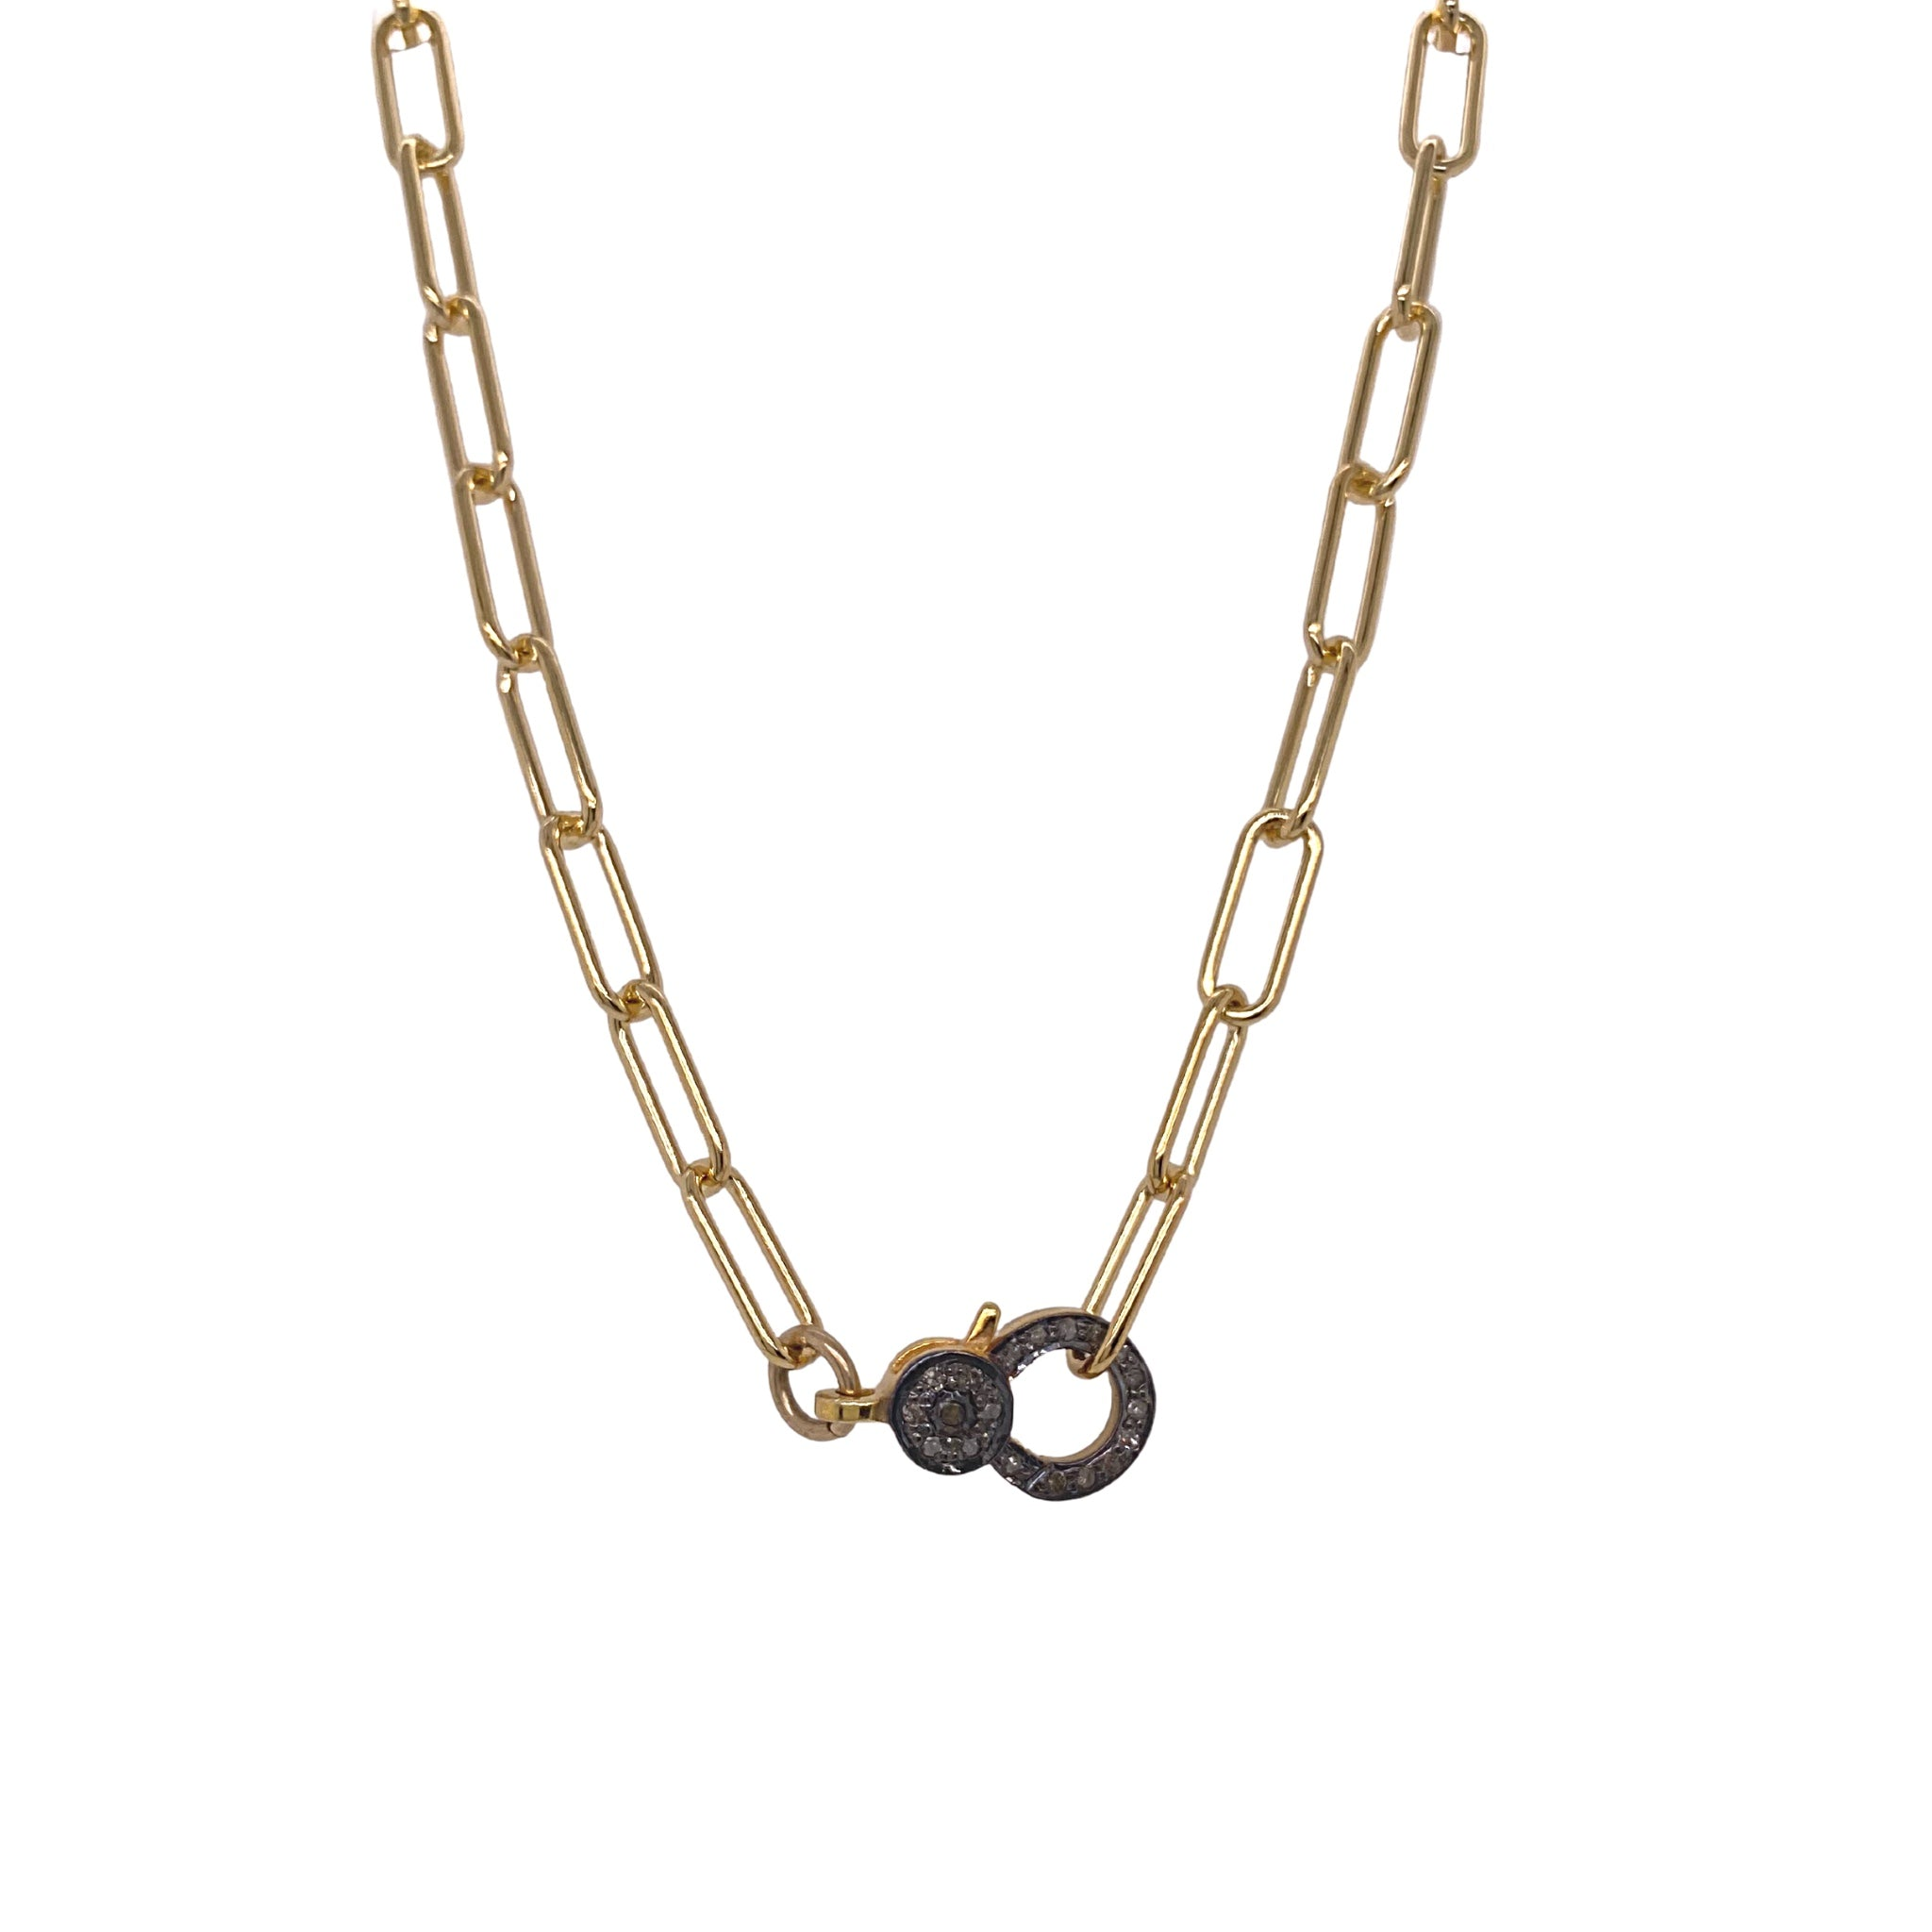 Tye Lock Necklace